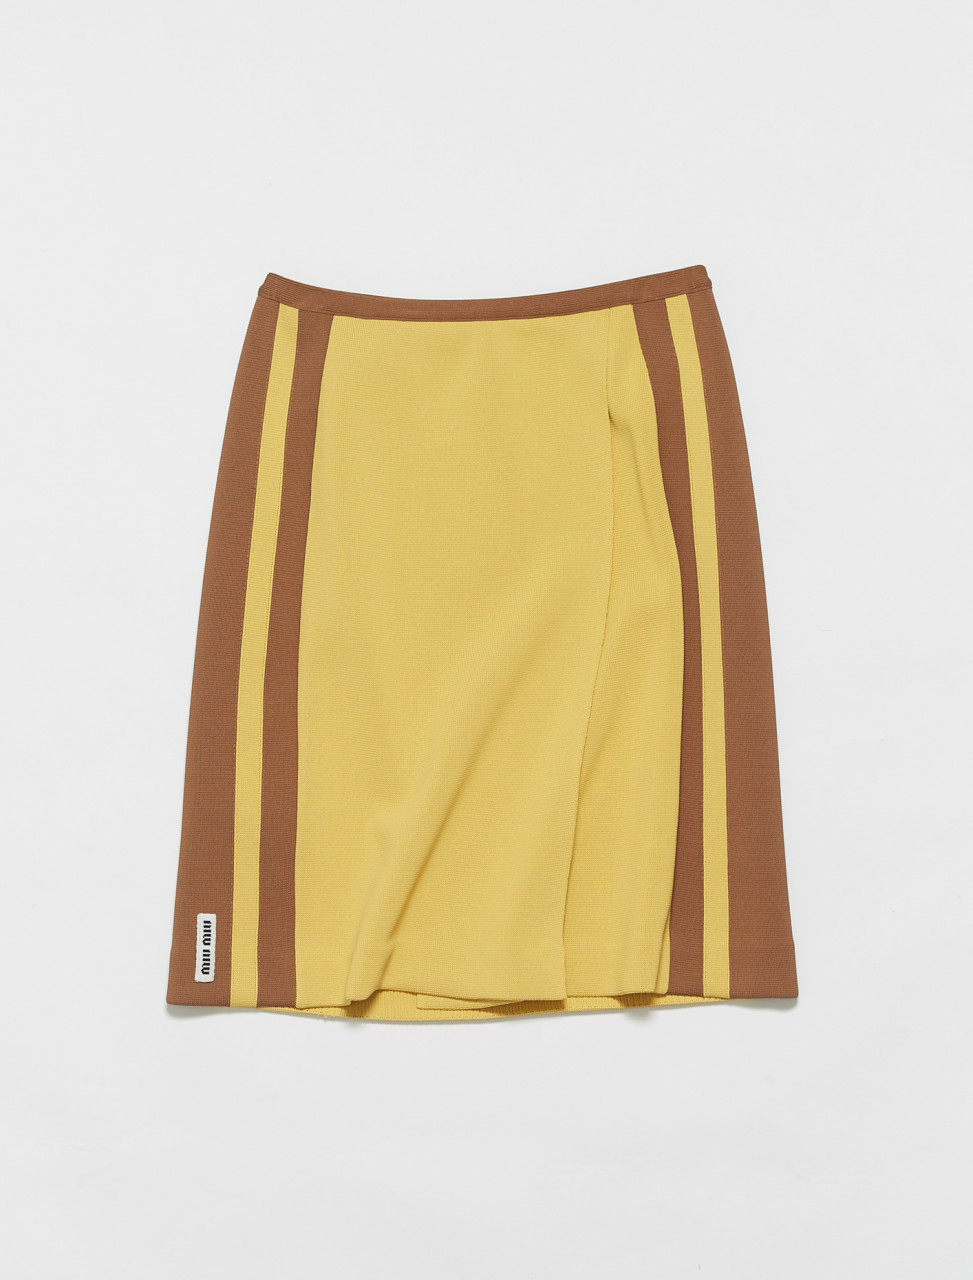 MMG351-F0W7B MIU MIU VISCOSE SKIRT IN HONEY & TOBACCO